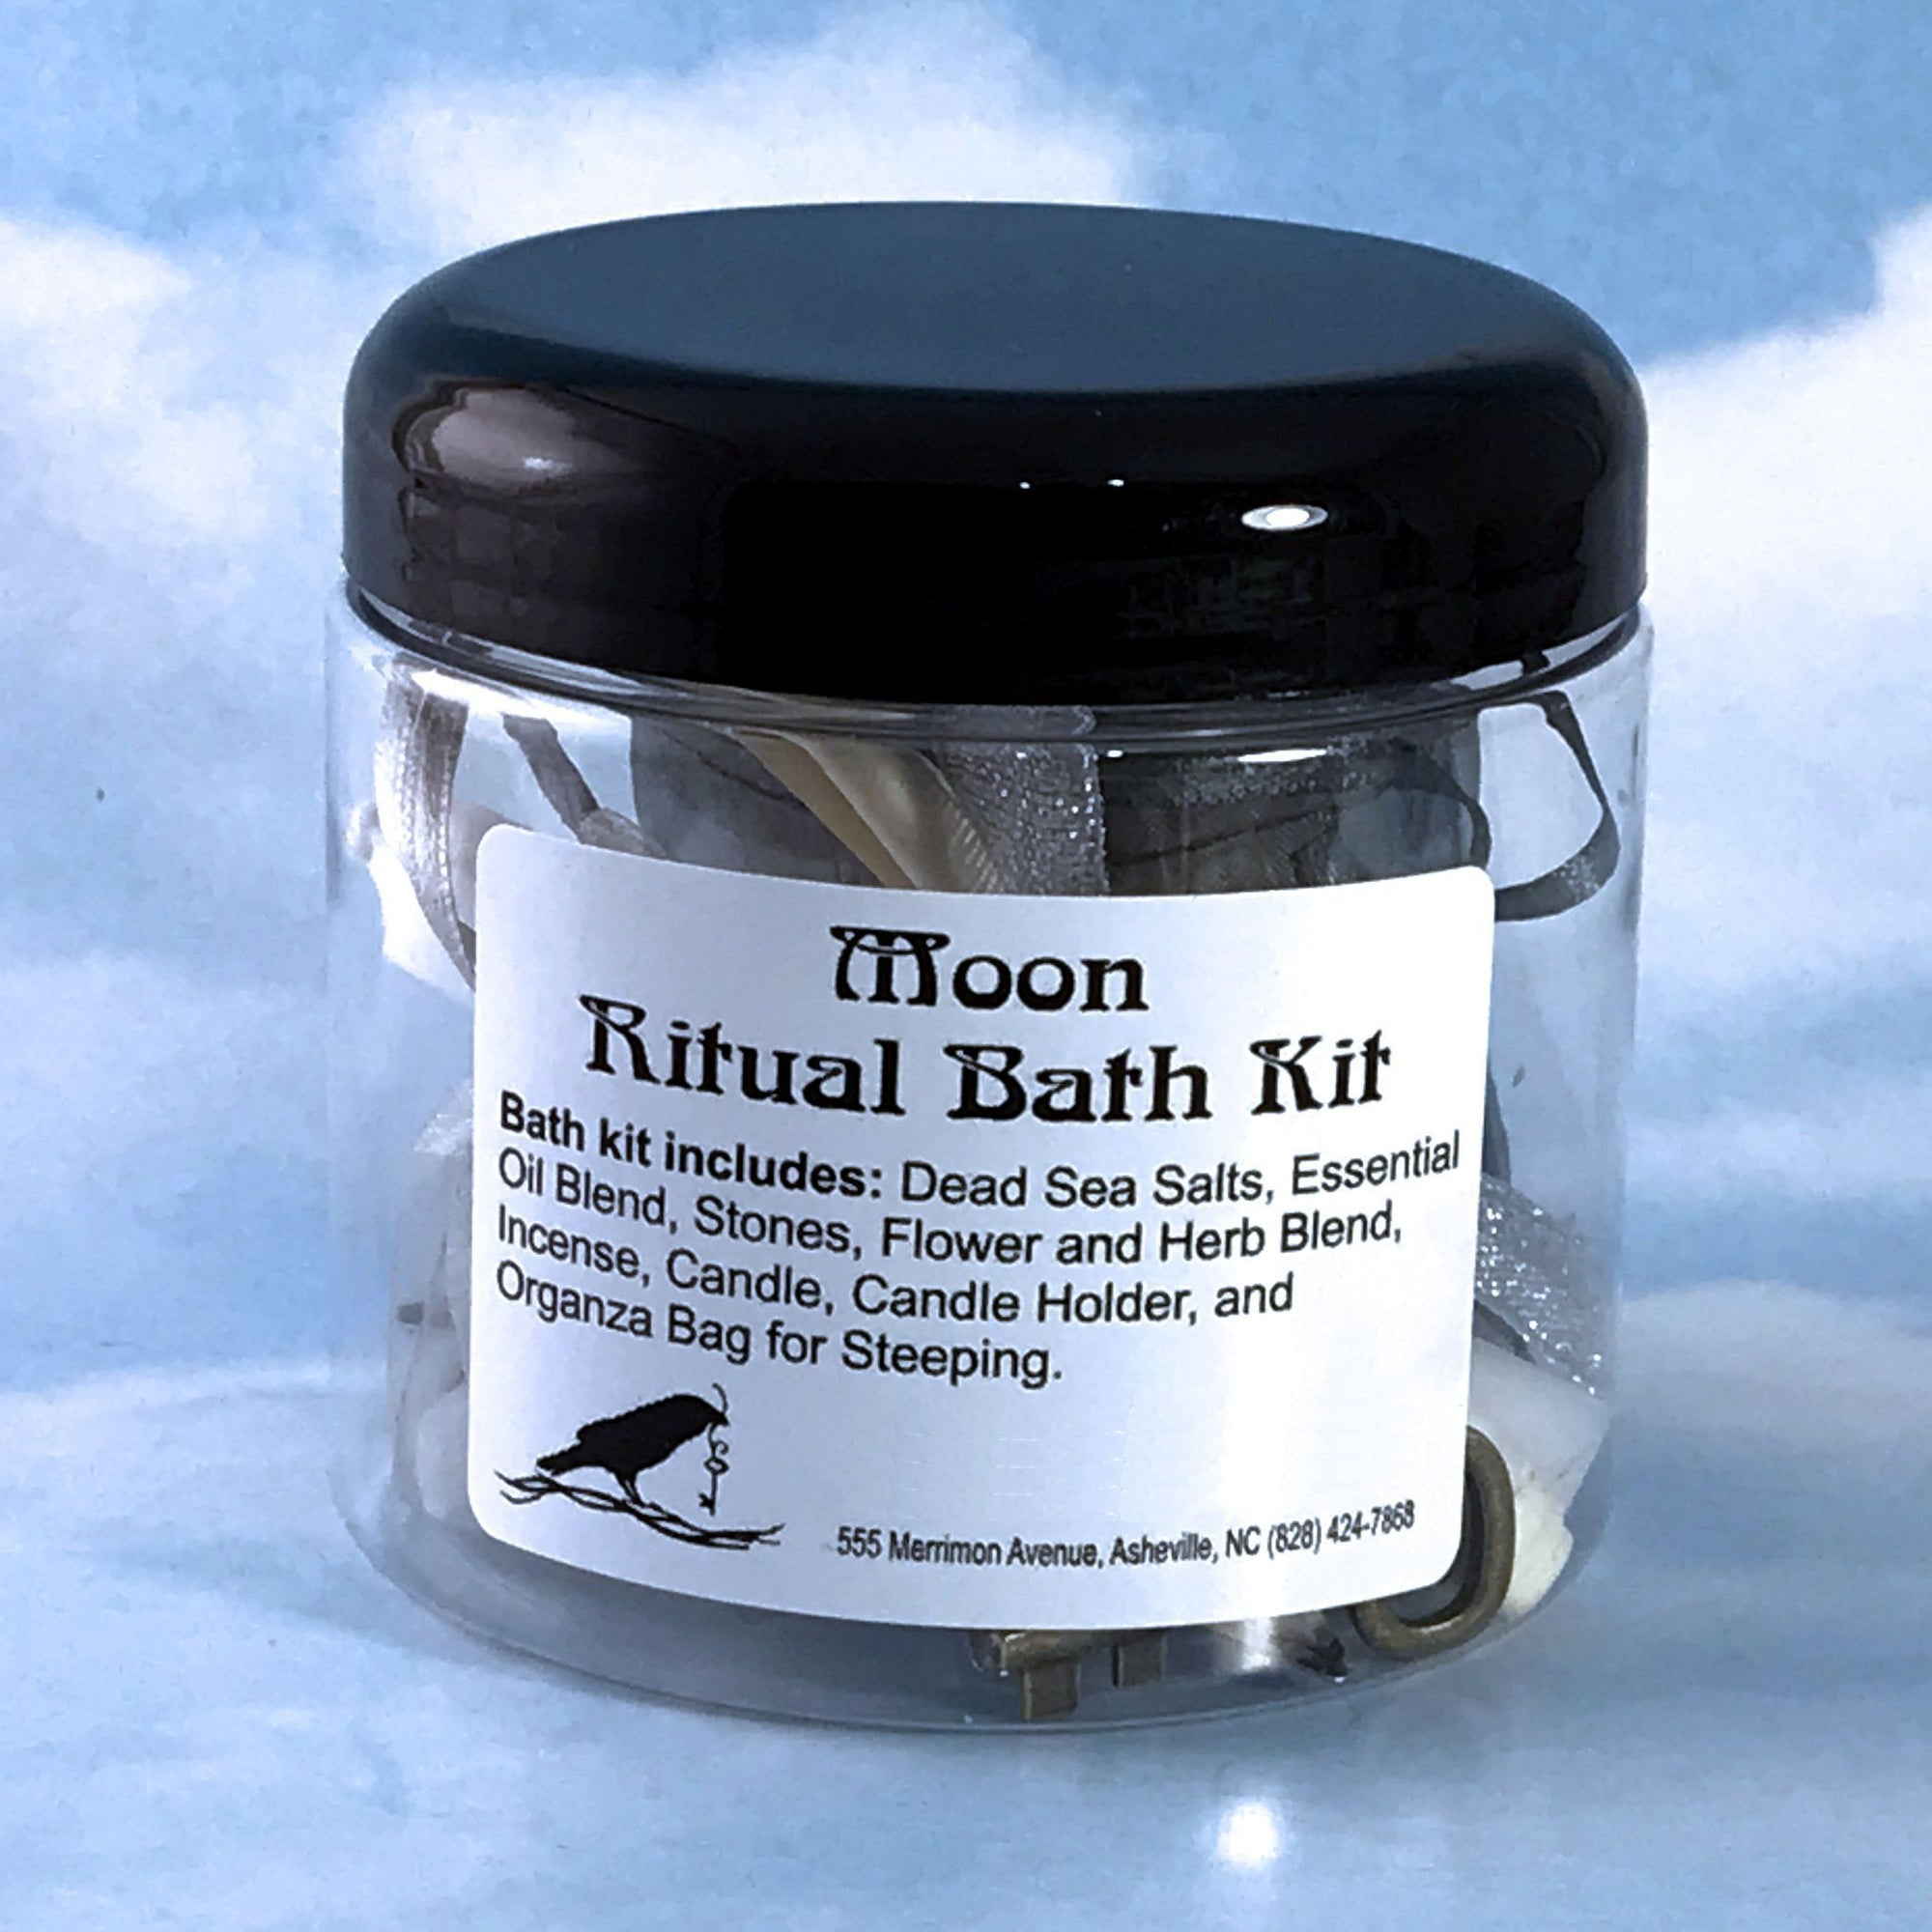 Moon Ritual Bath Kit